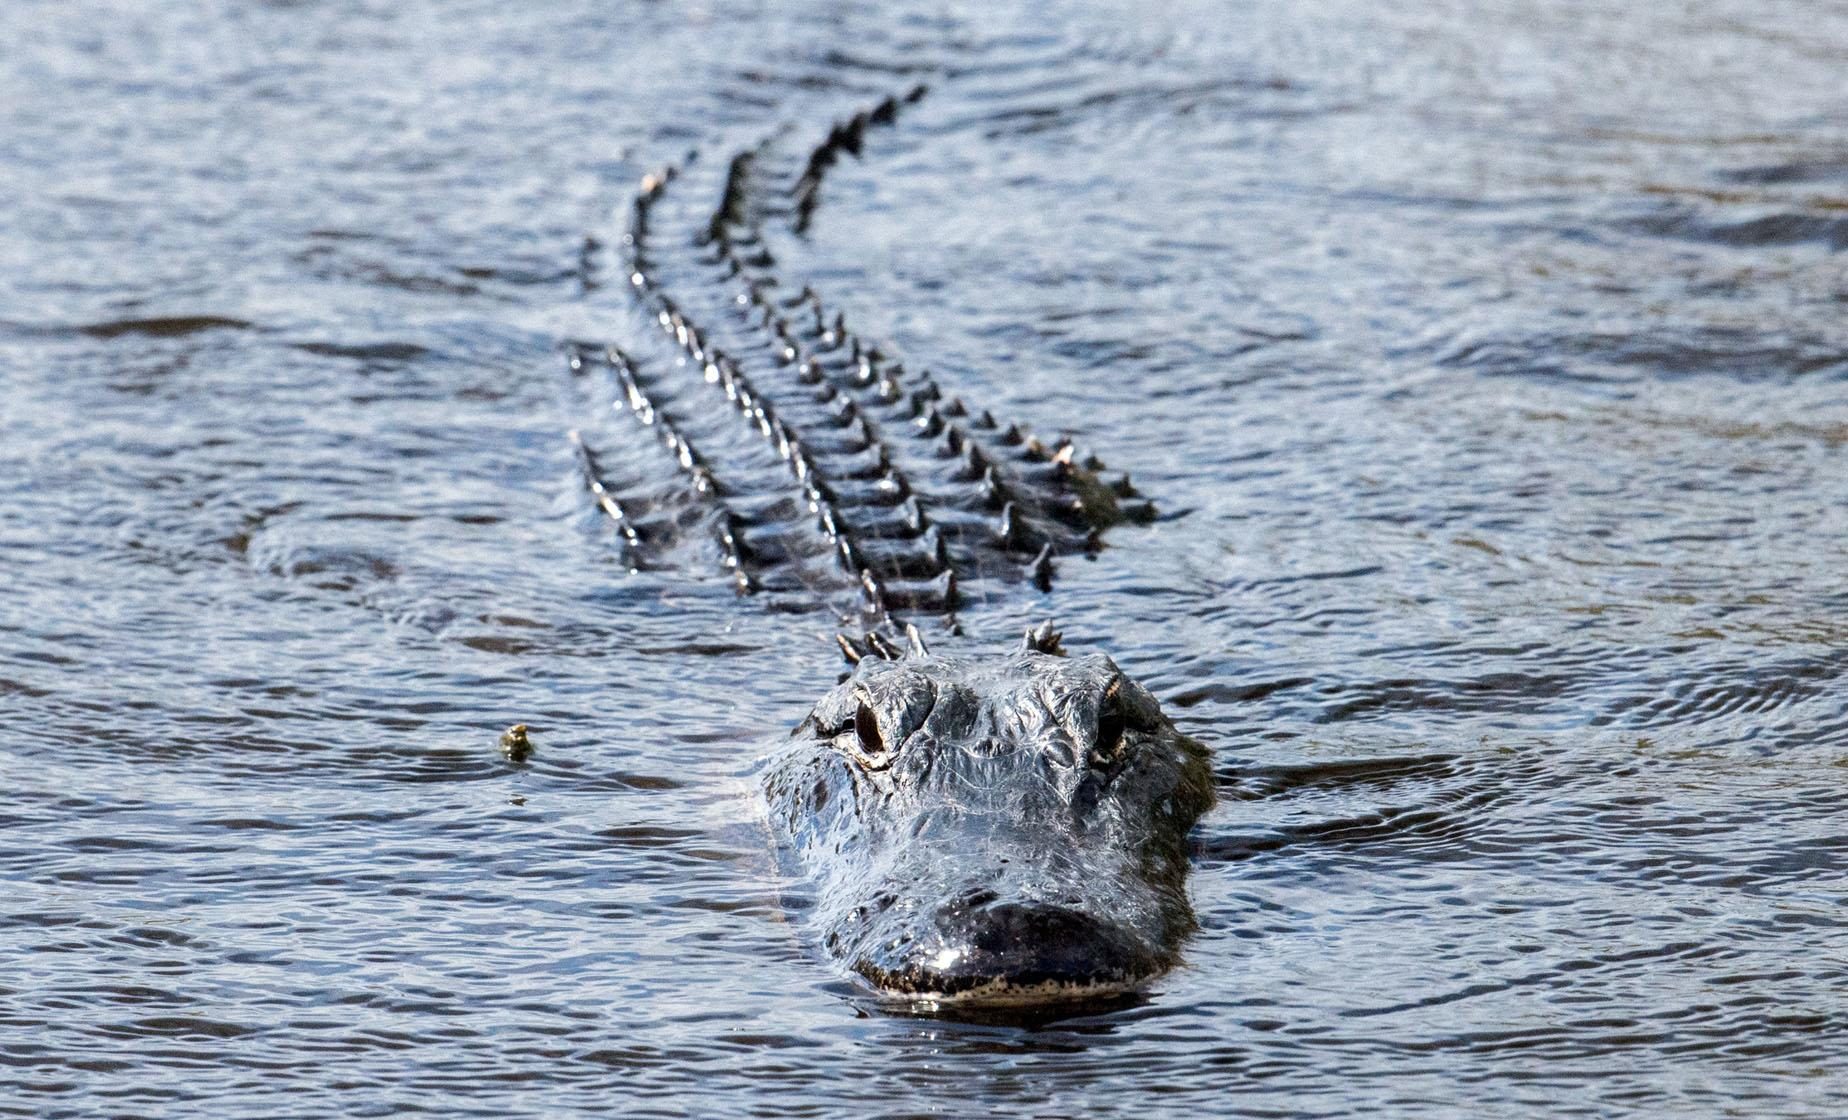 Central Florida Everglades Airboat Adventure with Transport from Orlando Florida